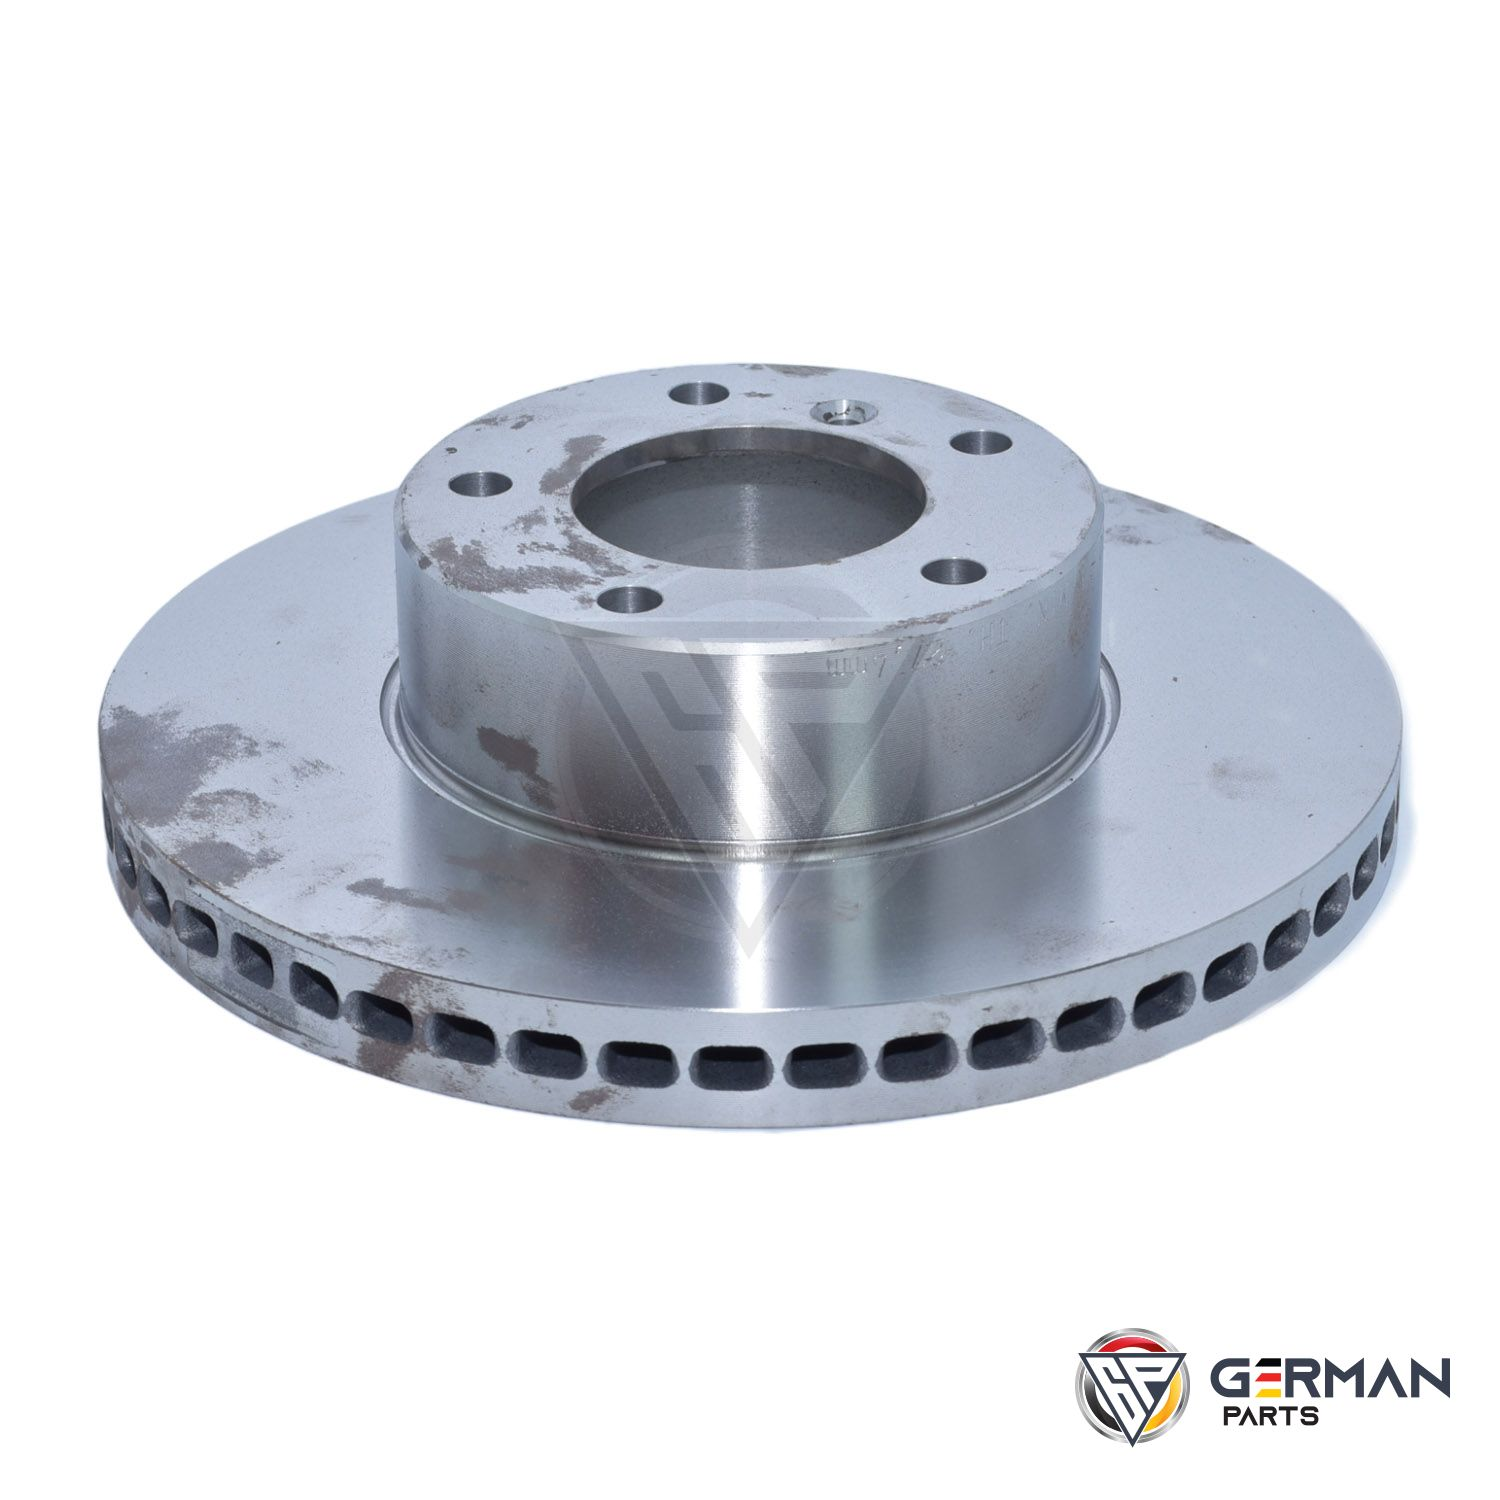 Buy Genuine Mercedes Benz Front Brake Disc 4634210012 - German Parts